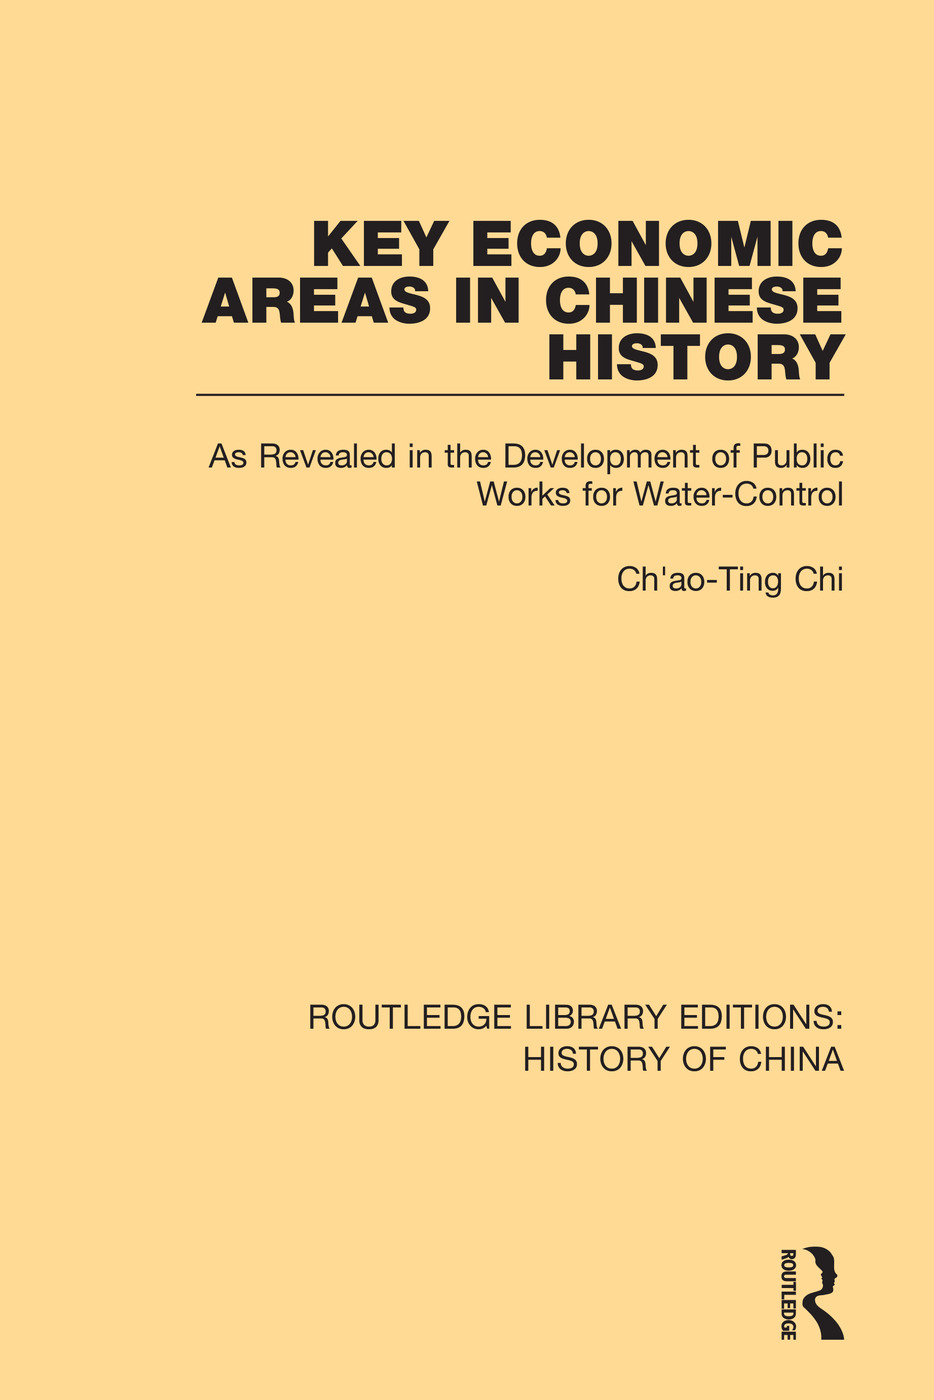 Key Economic Areas in Chinese History